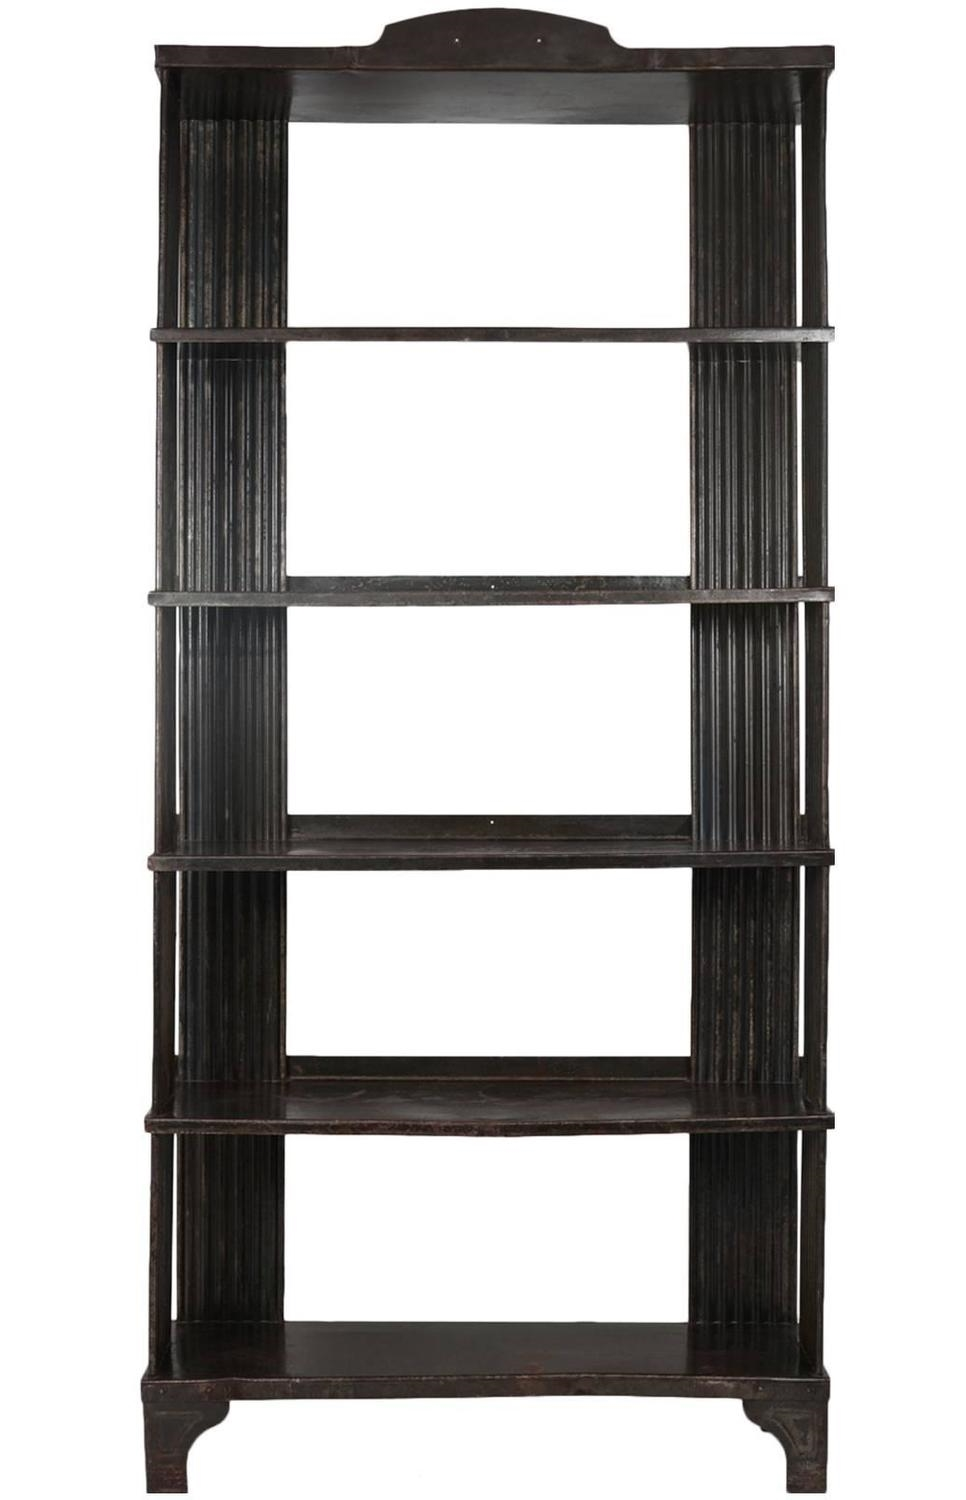 Art Deco Steel Shelving Unit